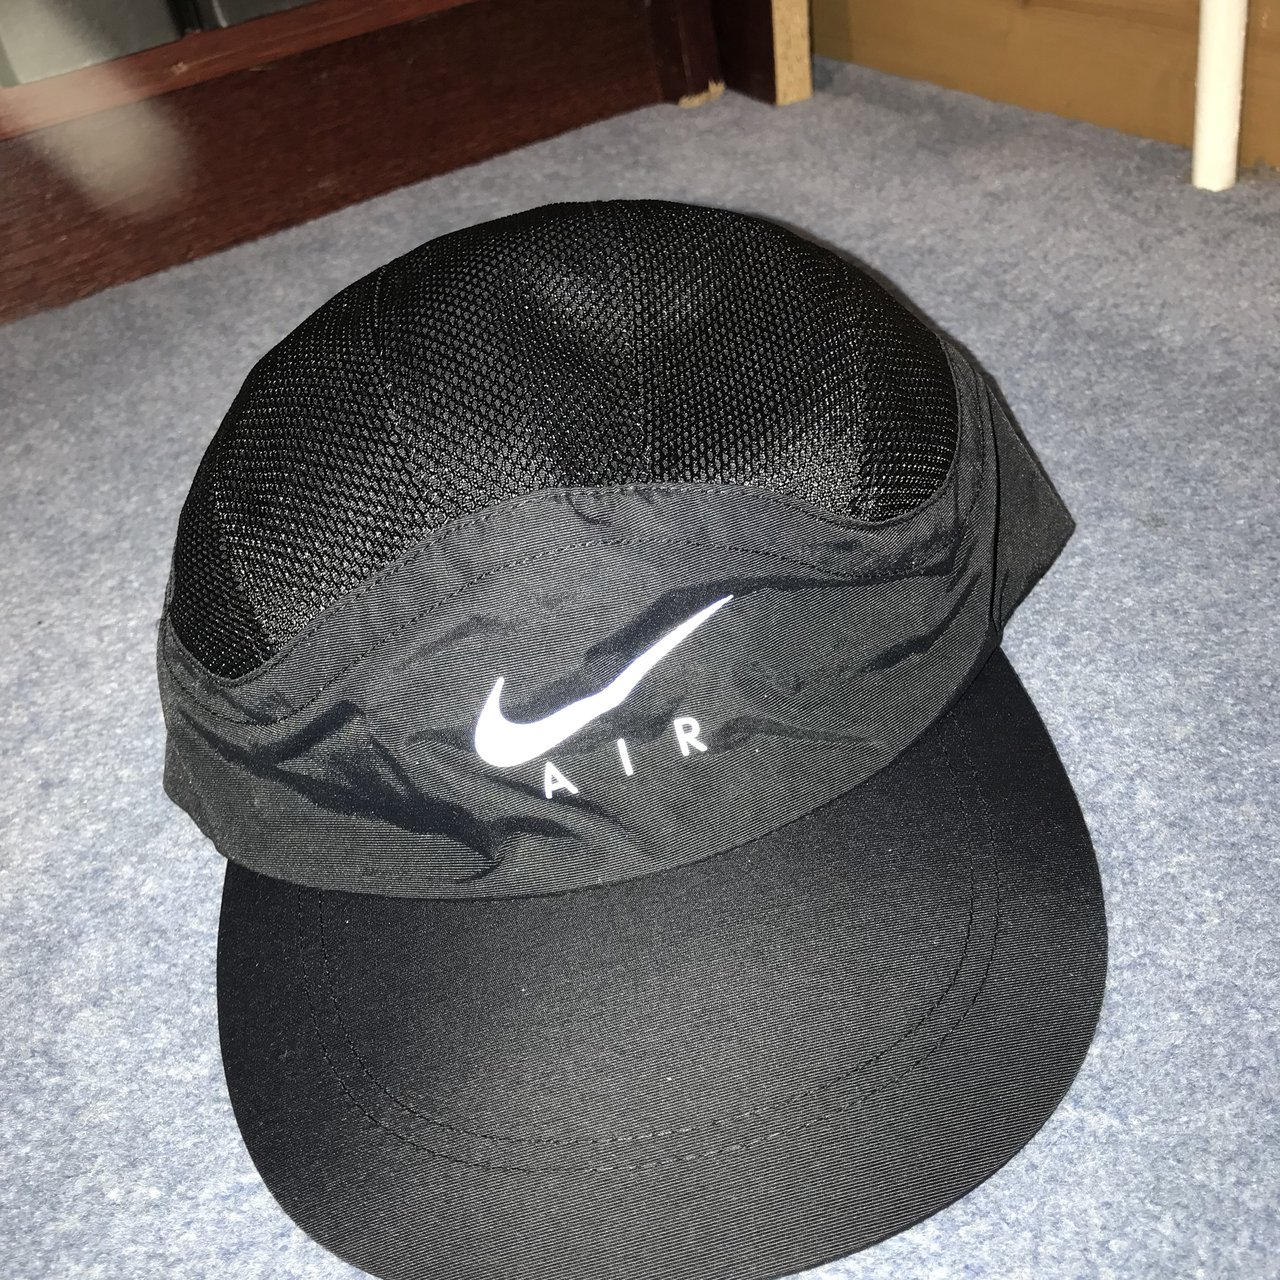 b328b38160b Supreme x Nike running hat. Brand new never worn! Going for - Depop